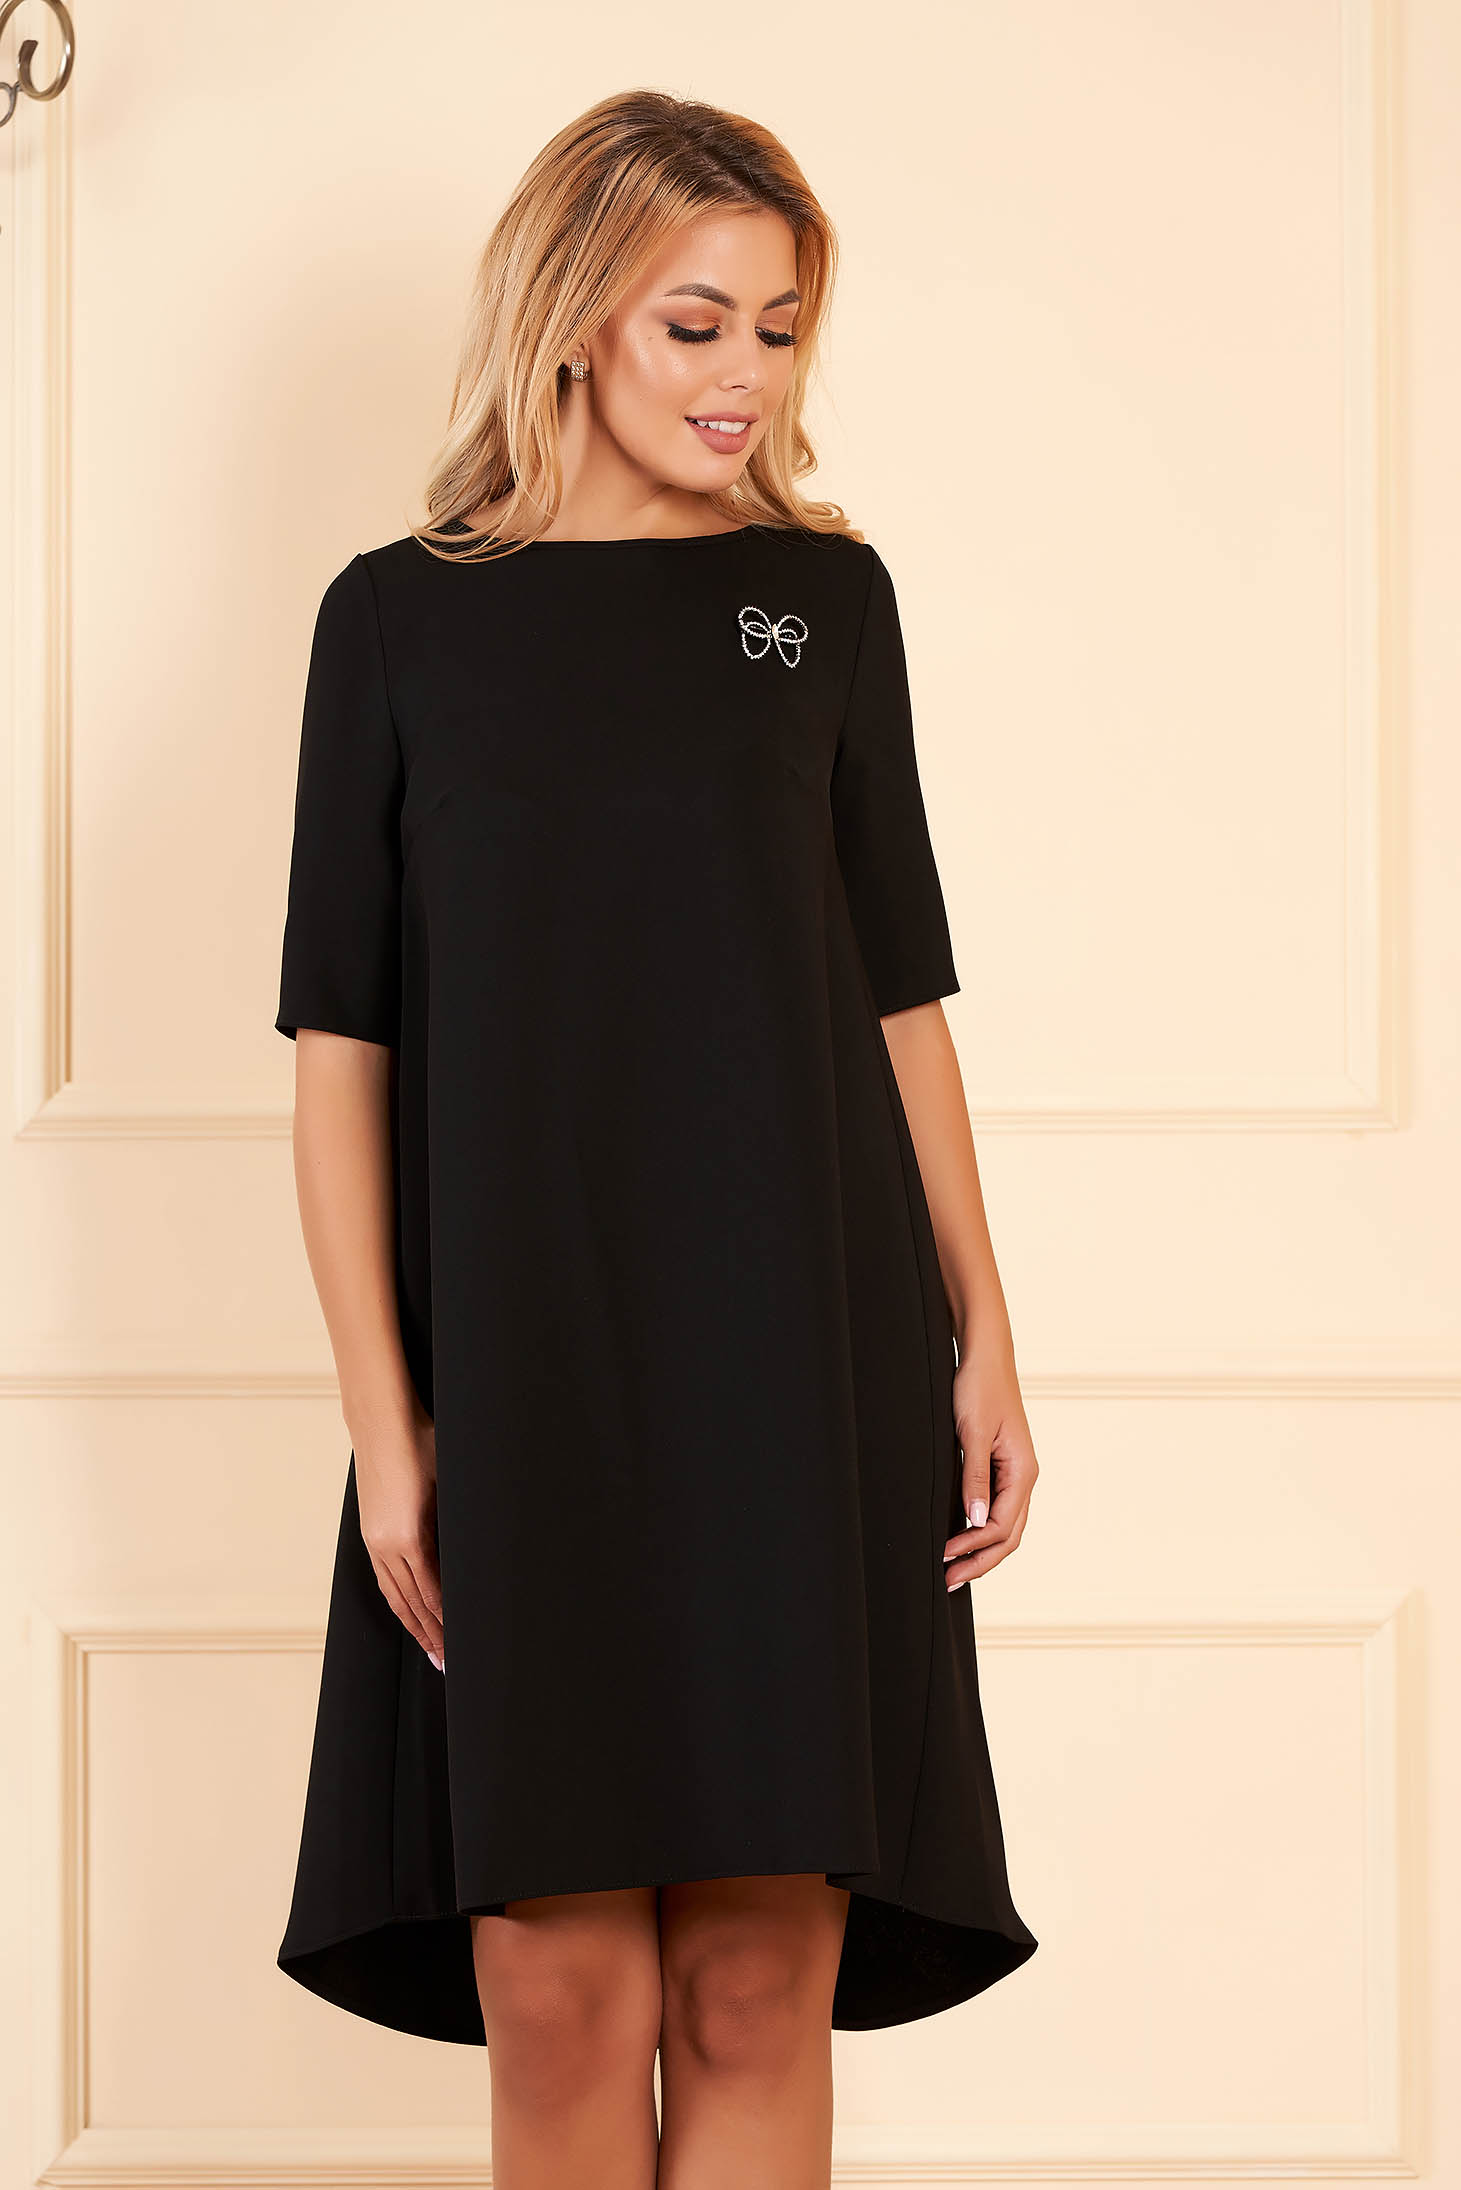 StarShinerS black dress elegant midi asymmetrical cloth short sleeves accessorized with breastpin with rounded cleavage